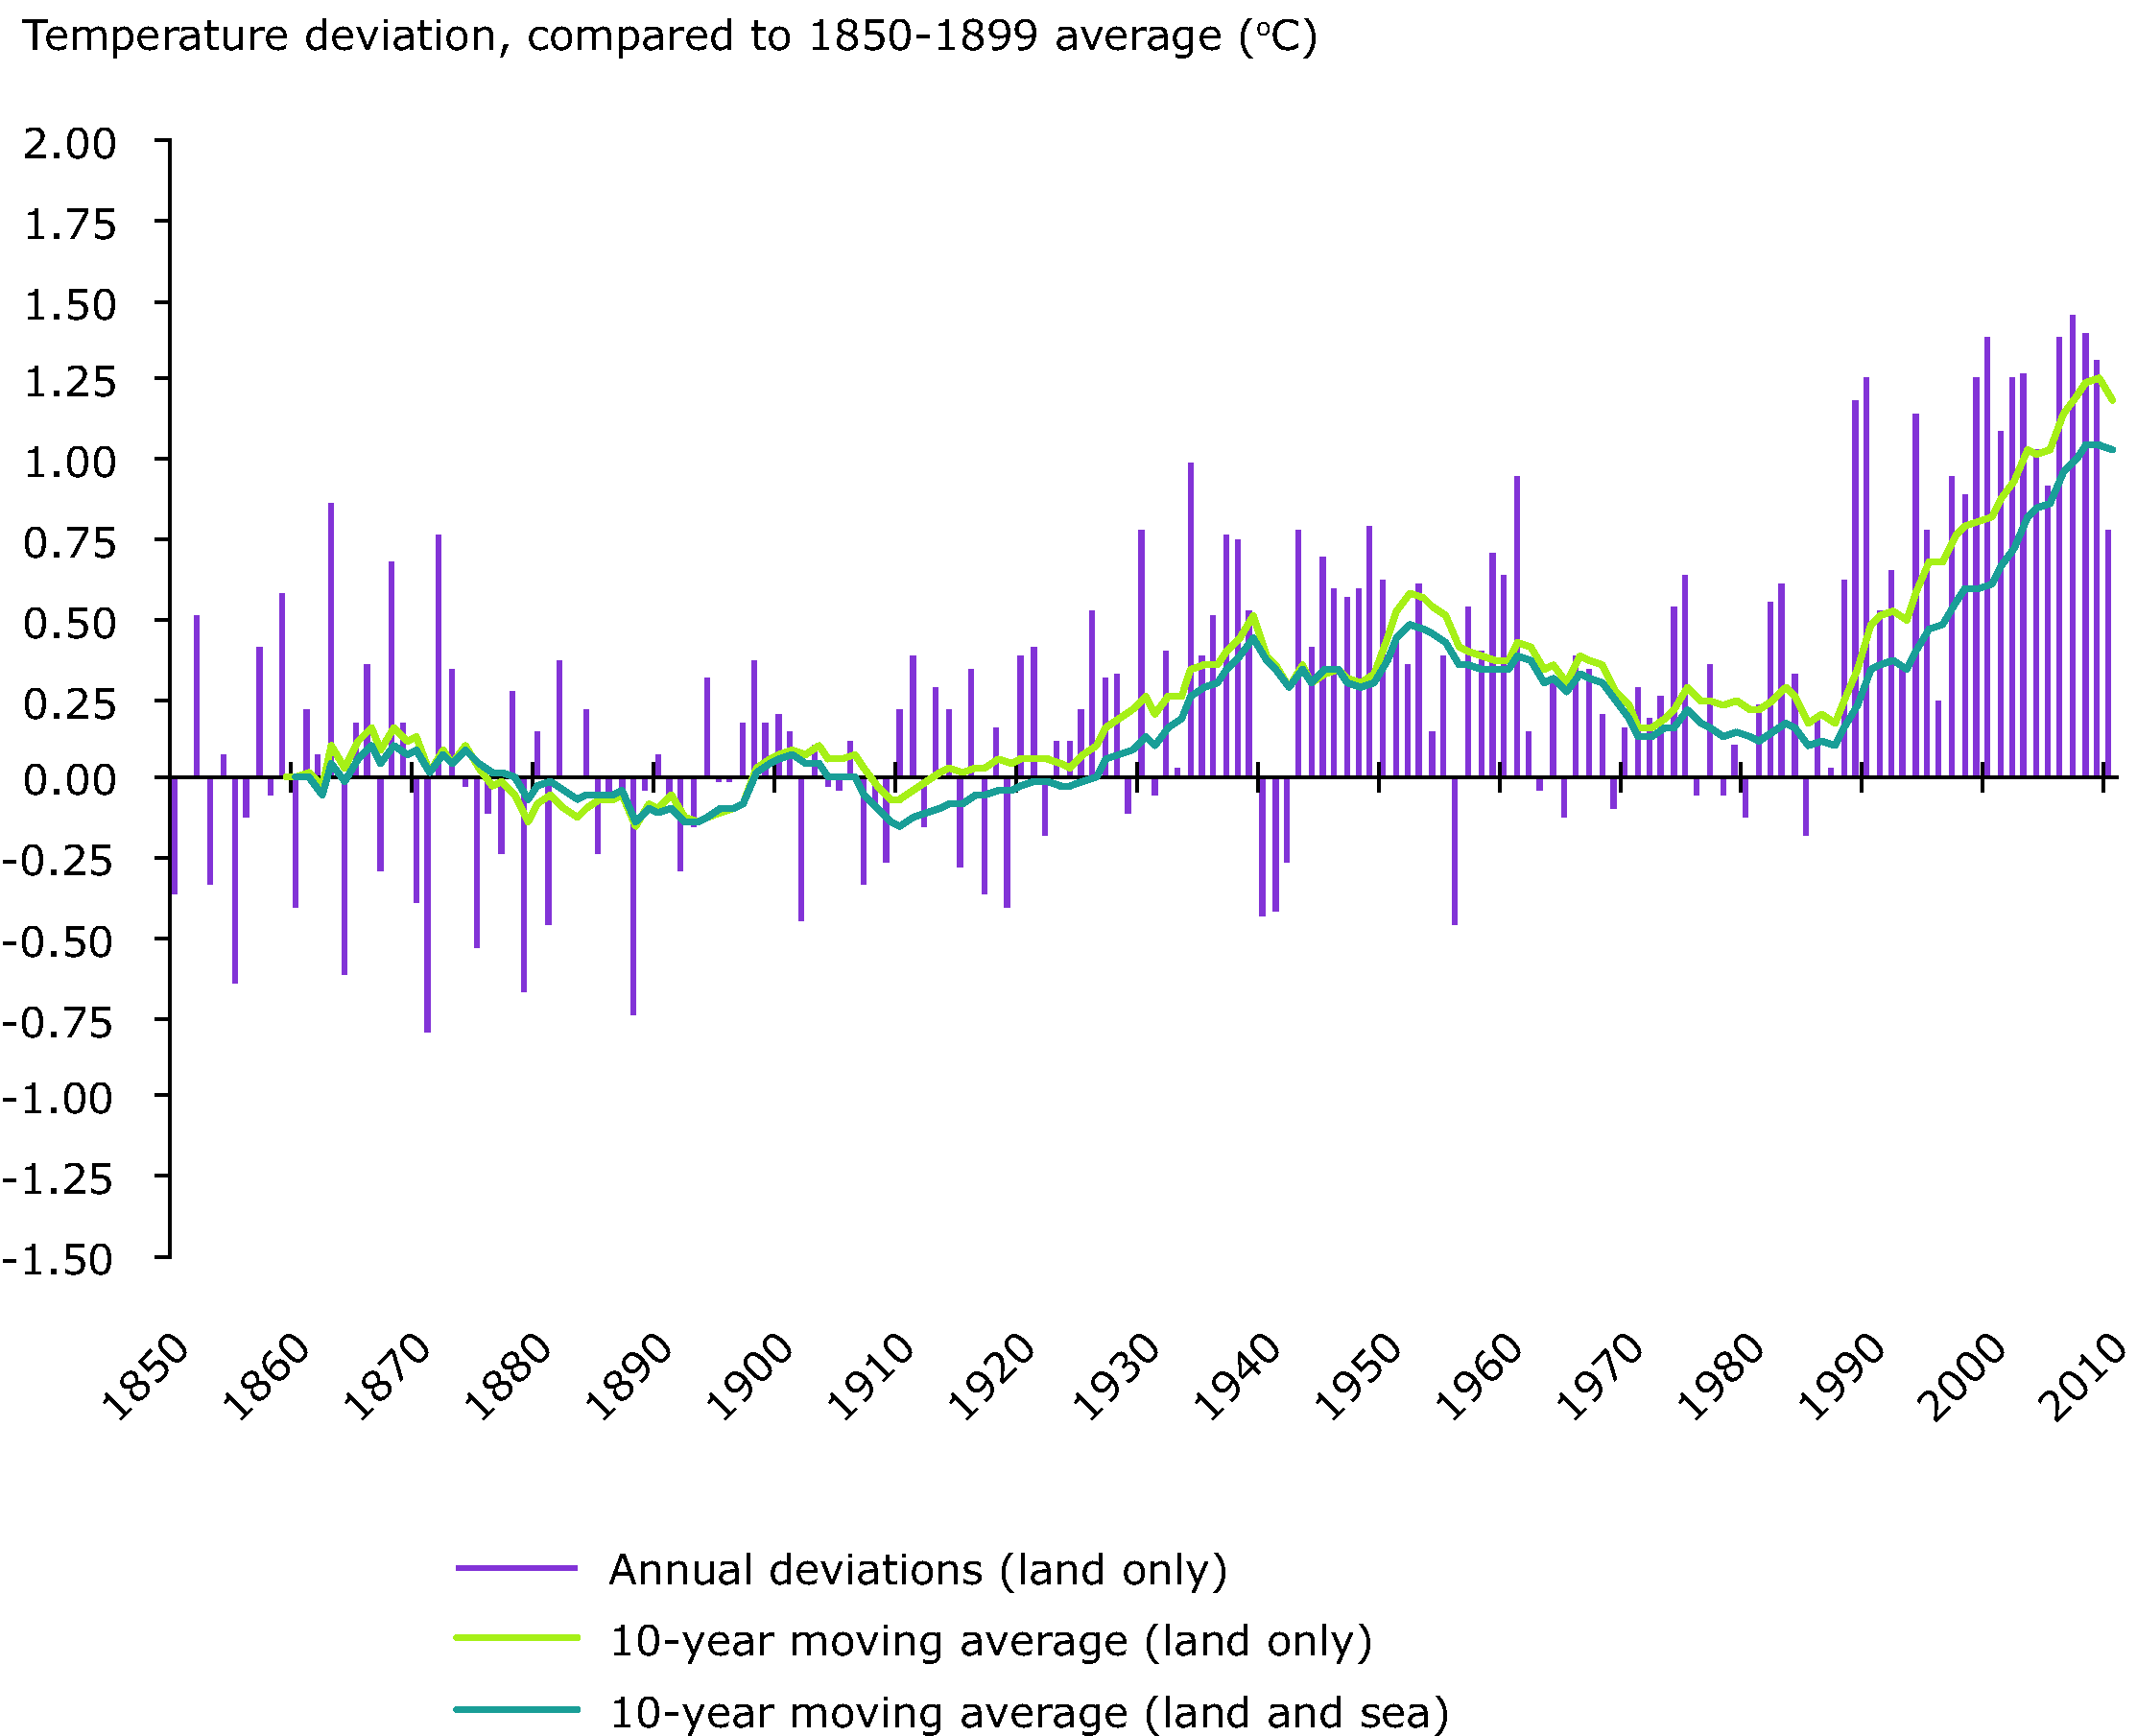 European annual average temperature deviations, 1850-2010, relative to the 1850-1899 average (in °C).